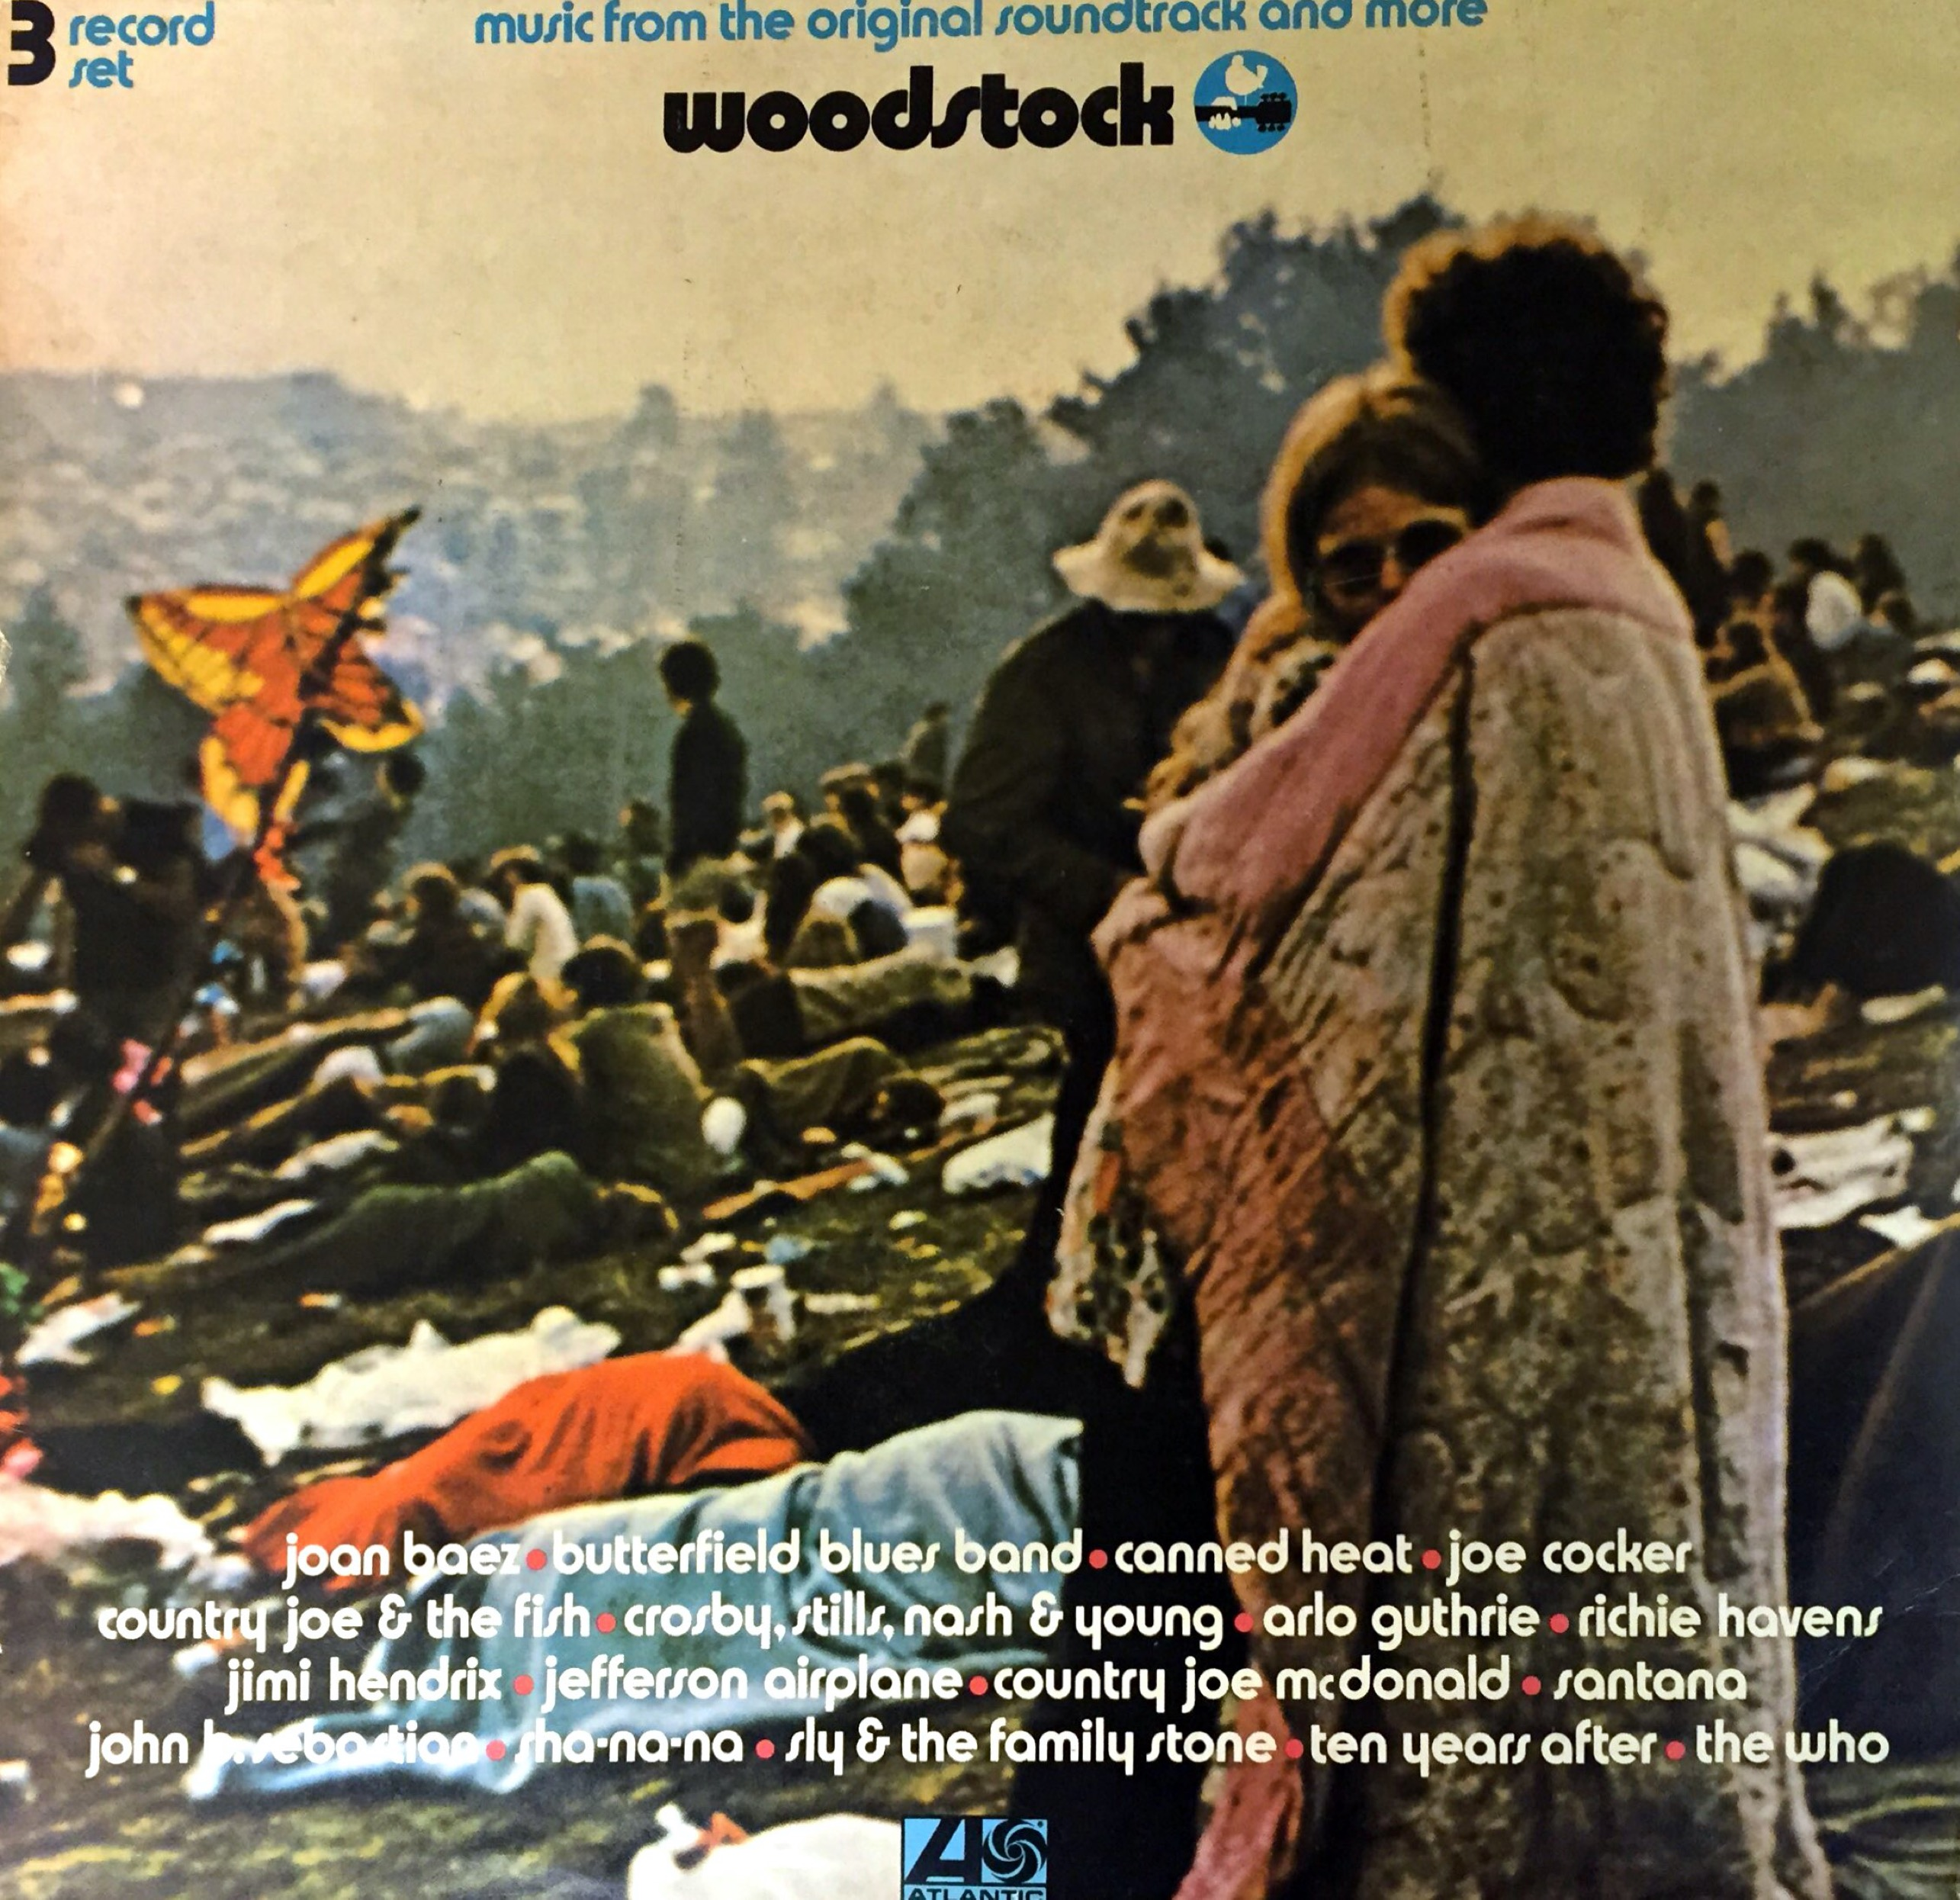 Woodstuck album cover, showing 2 people standing and embracing, while many others are laying down on the grass in the sunshine behind them.